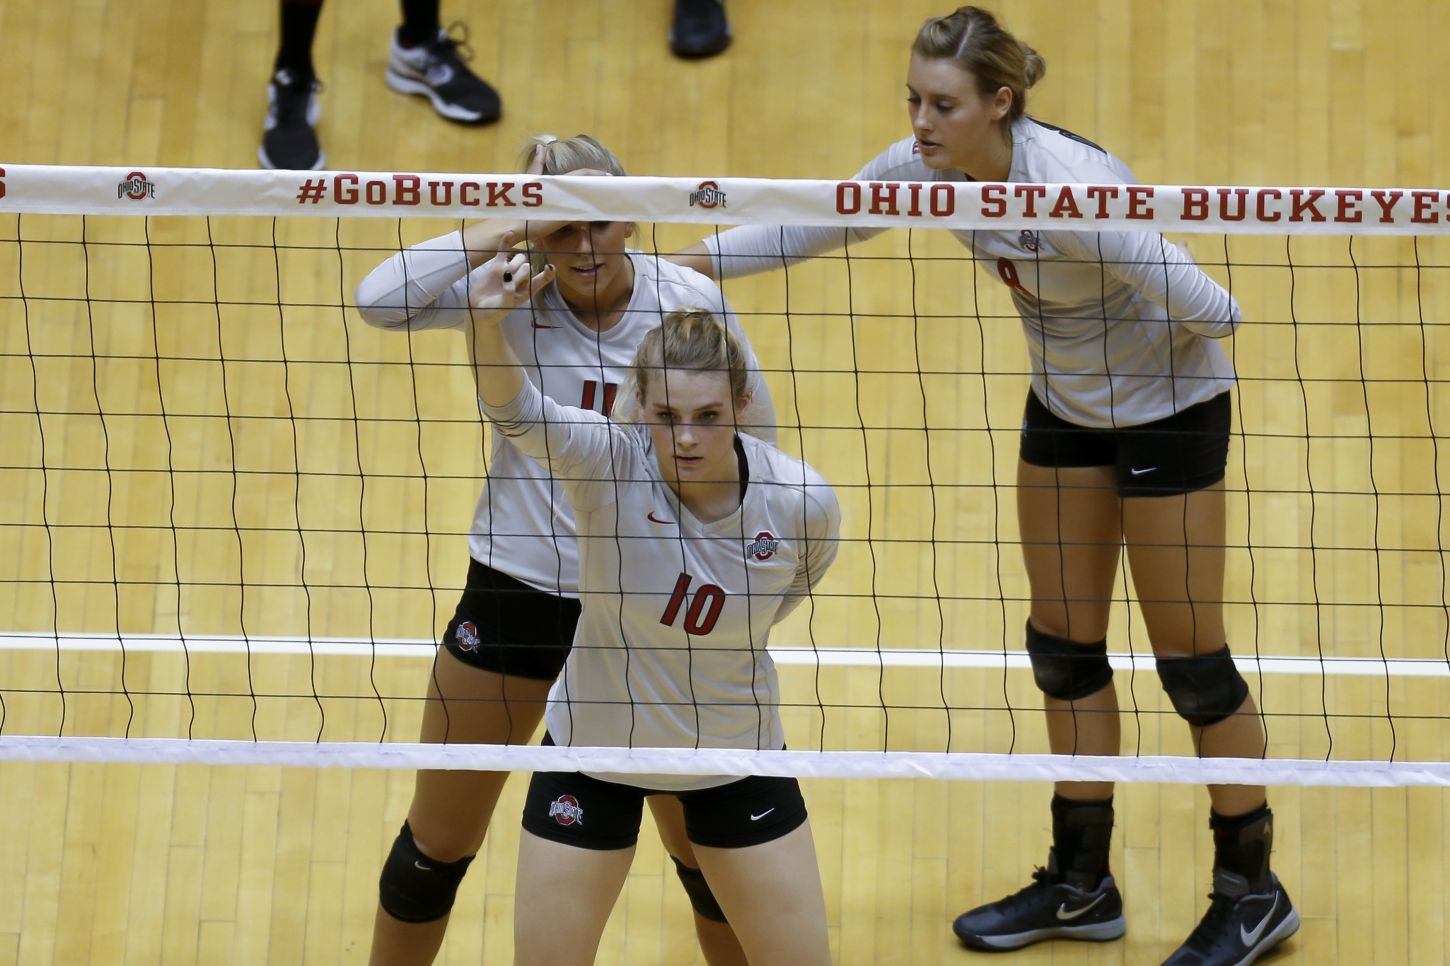 Ohio State vs Michigan Women's Volleyball at St. John Arena on Friday, September 27, 2013. OSU defeated Michigan 3 sets to 1. Kaitlyn Leary (11), Taylor Sandbothe (10), Taylor Sherwin (8)